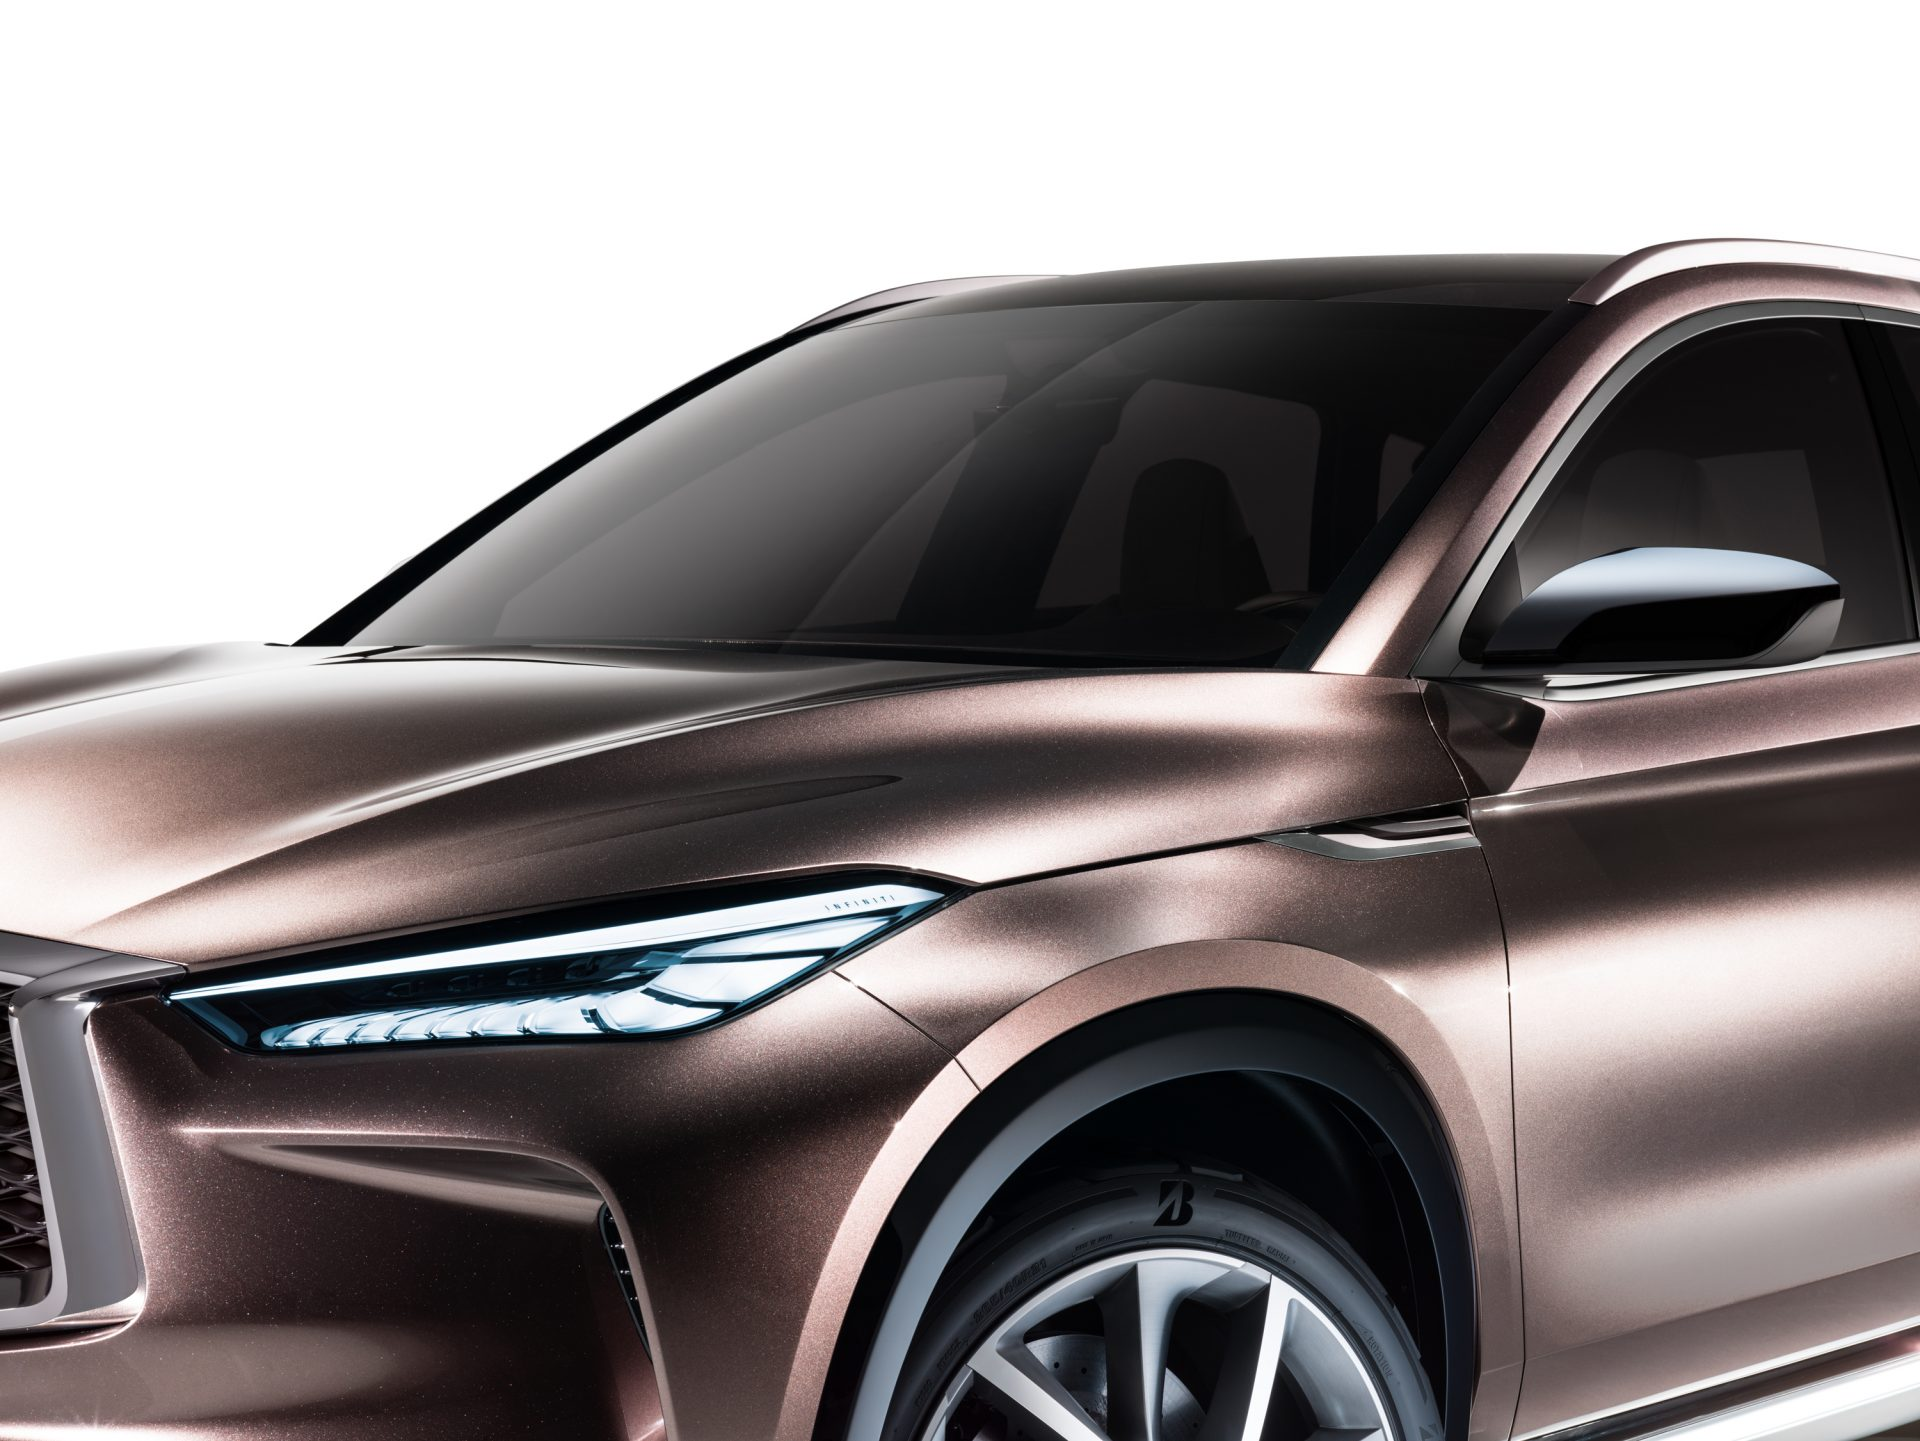 Demonstrating how the design of the 2016 QX Sport Inspiration, its conceptual forebear, could be adapted for a future production model, the QX50 Concept confidently articulates INFINITI's 'Powerful Elegance' design language. A 'cabin-forward' silhouette combines with muscular lines and flowing surfaces to telegraph its purpose as a dynamic and practical crossover.